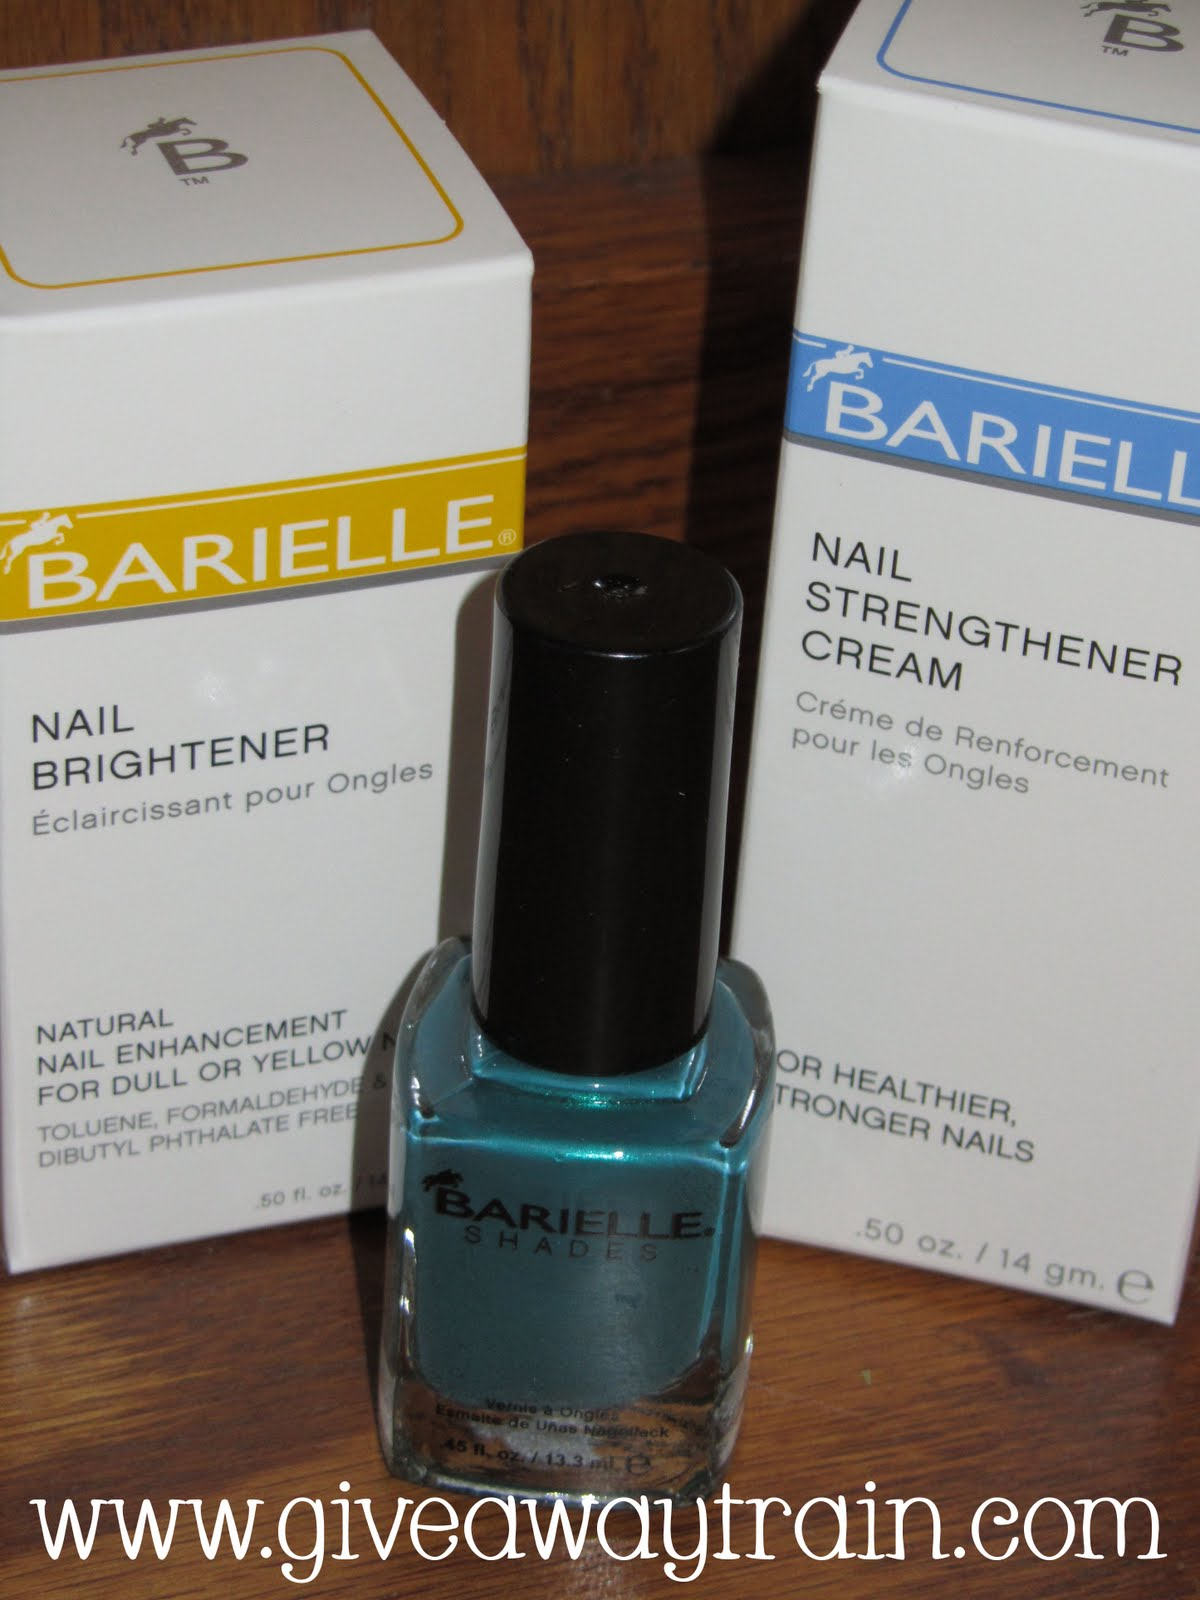 CLOSED} Barielle Review & Giveaway